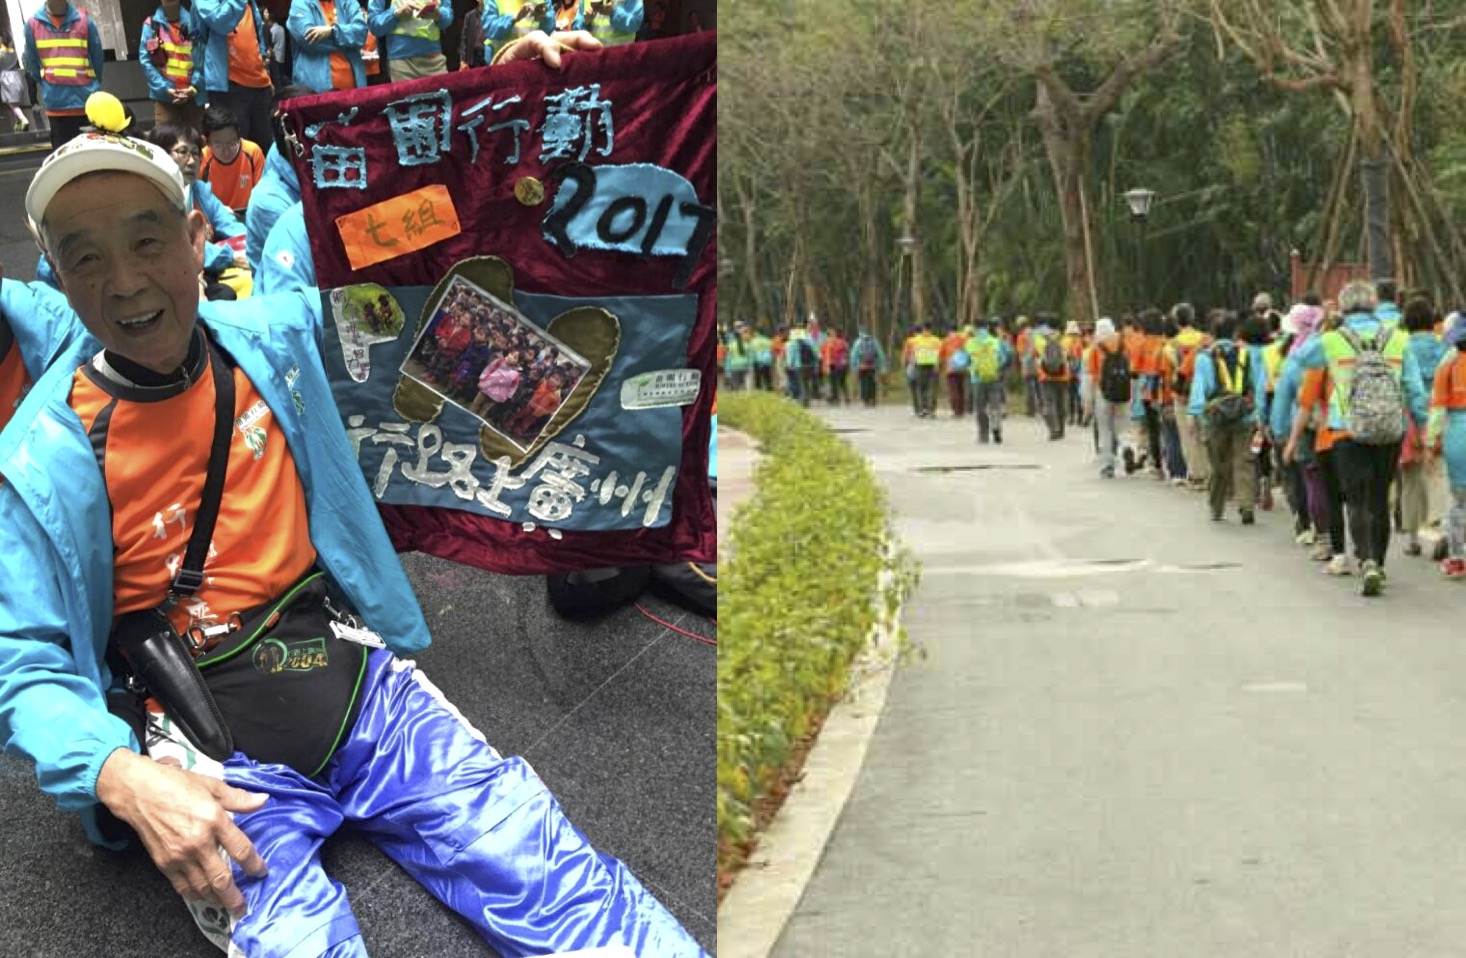 84-Year-Old Hong Kong Man Walks 100km to Guangzhou For Charity